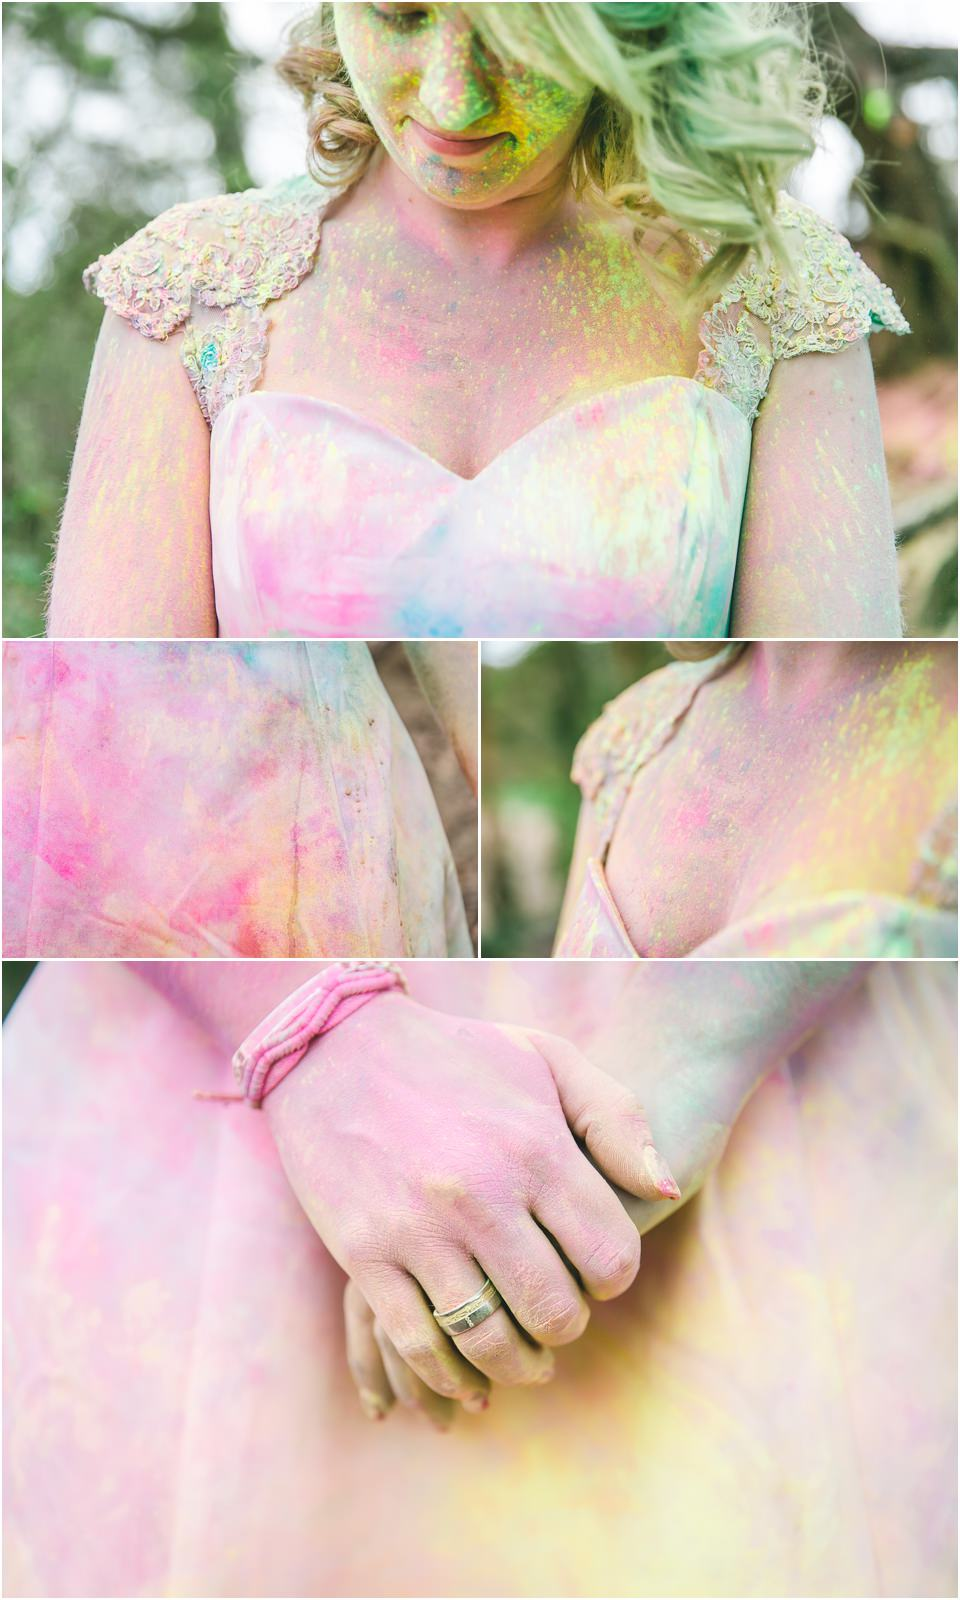 Trash-The-Dress-after-wedding-holi-color-shooting-heidelberg-schwetzingen-herr-knebel-fotografie 11